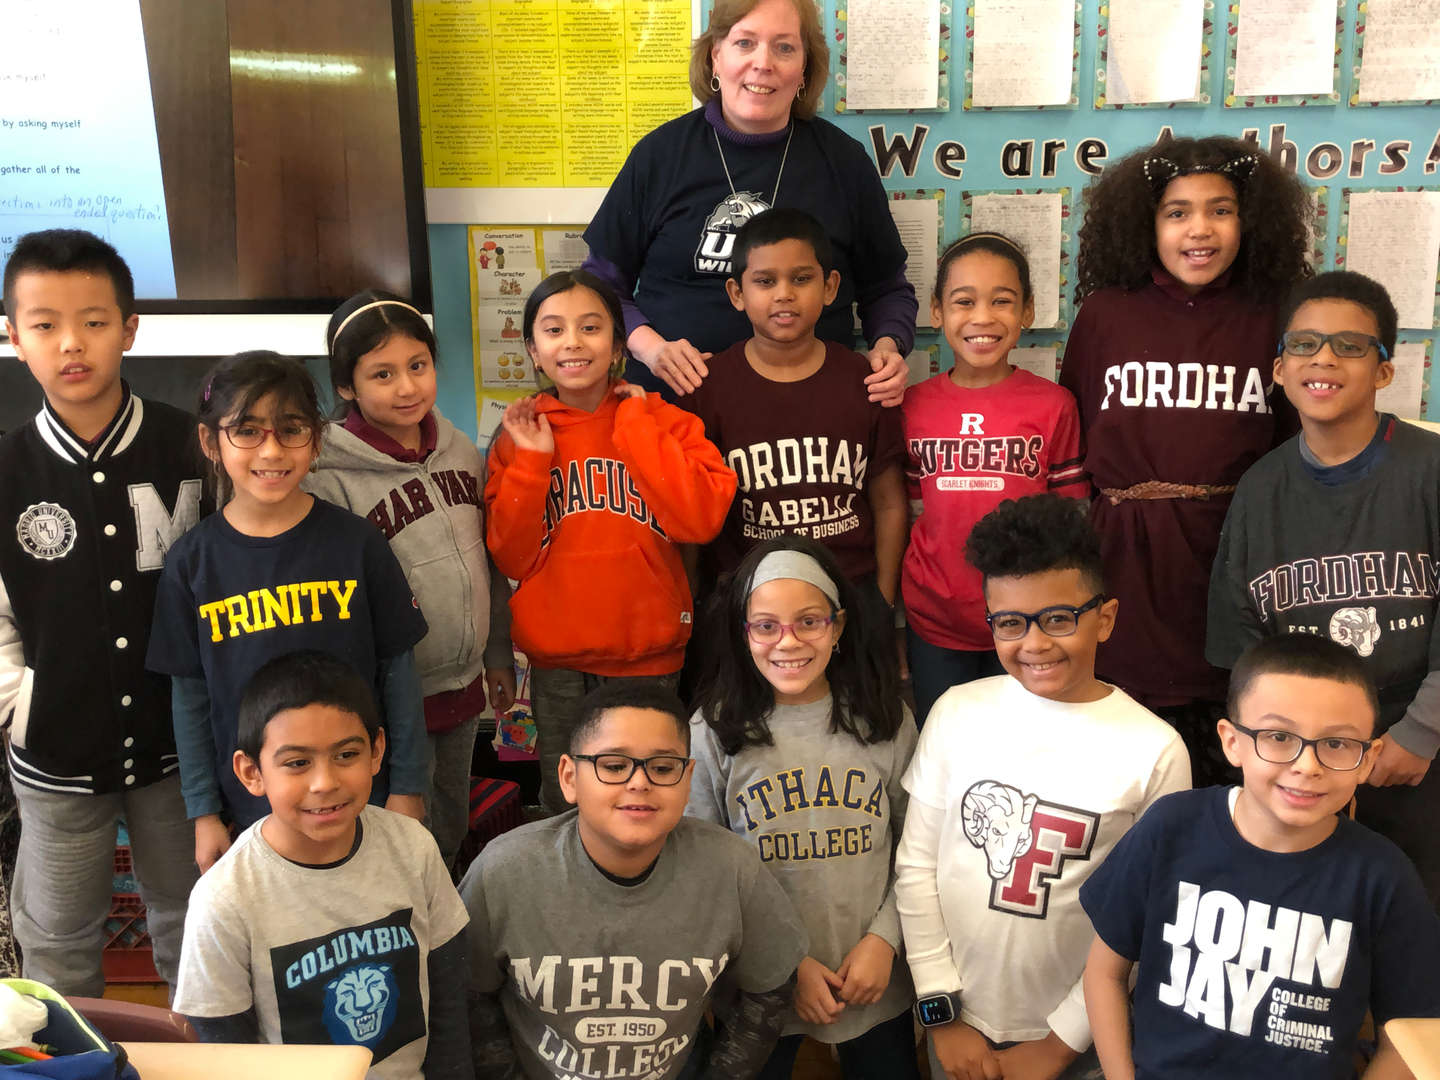 Third graders and their teacher wearing college gear in their classroom.